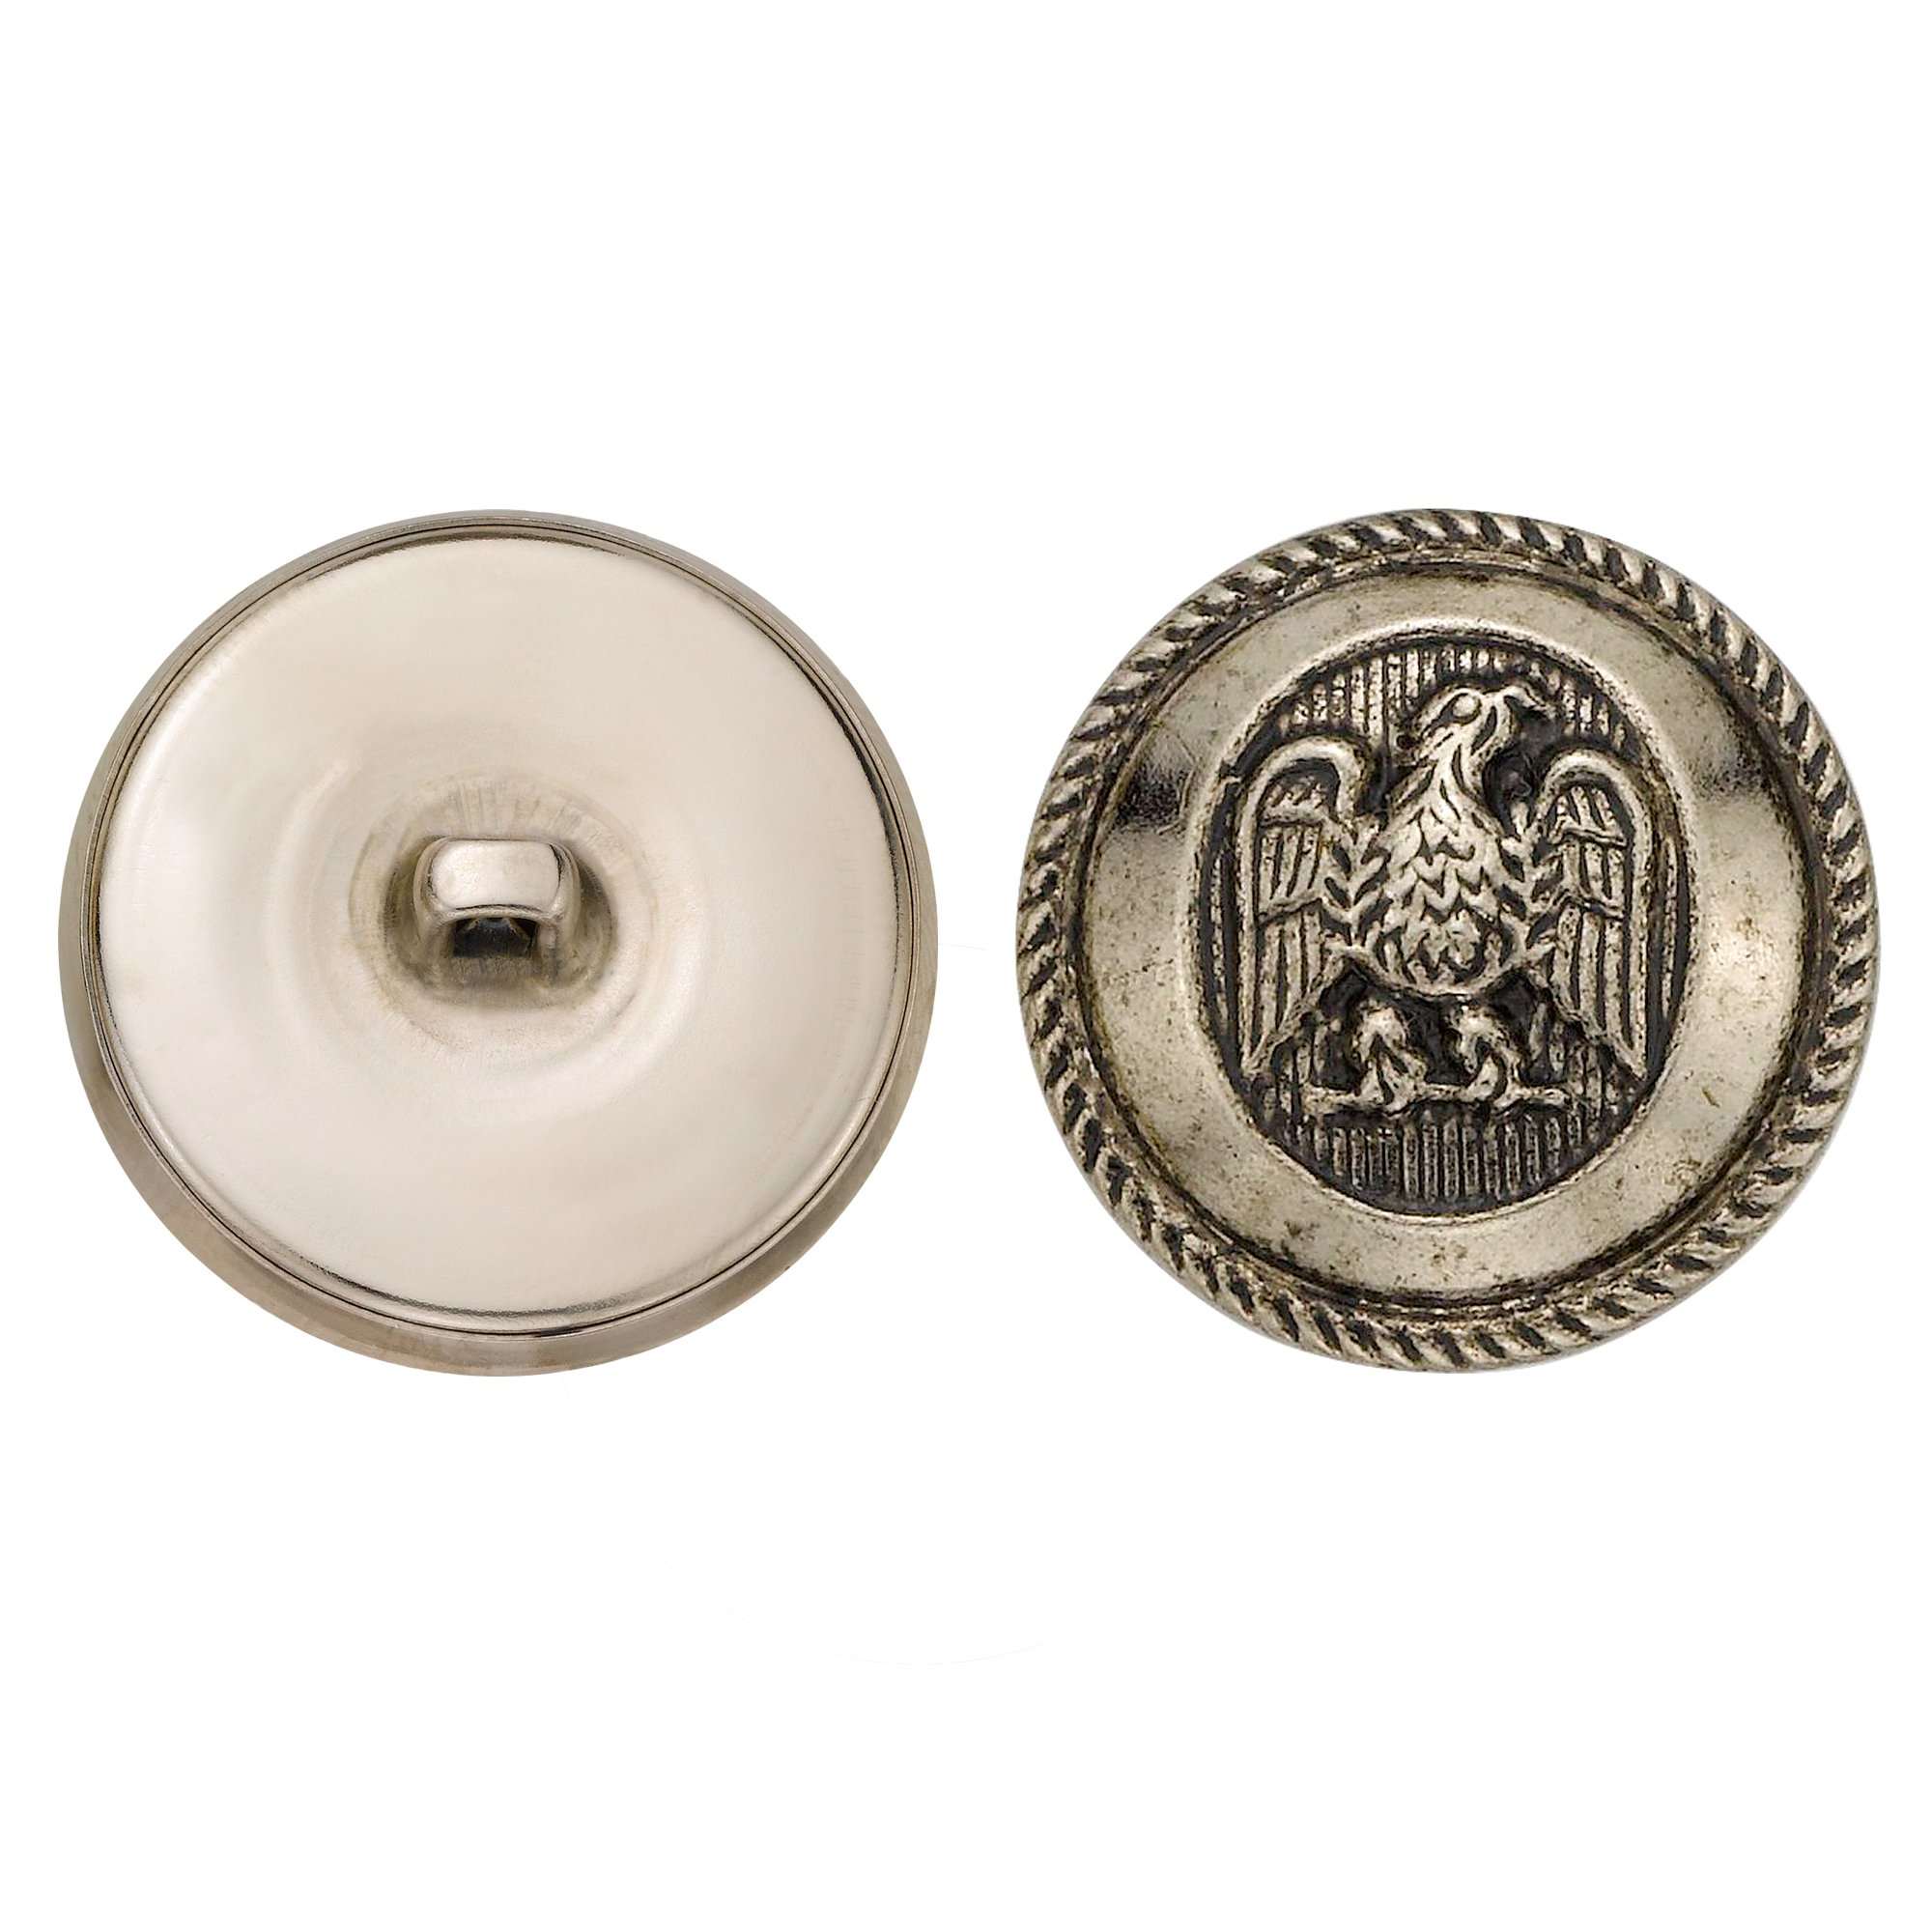 C&C Metal Products 5064 Rope Rim Usa Eagle Metal Button, Size 45 Ligne, Antique Nickel, 36-Pack